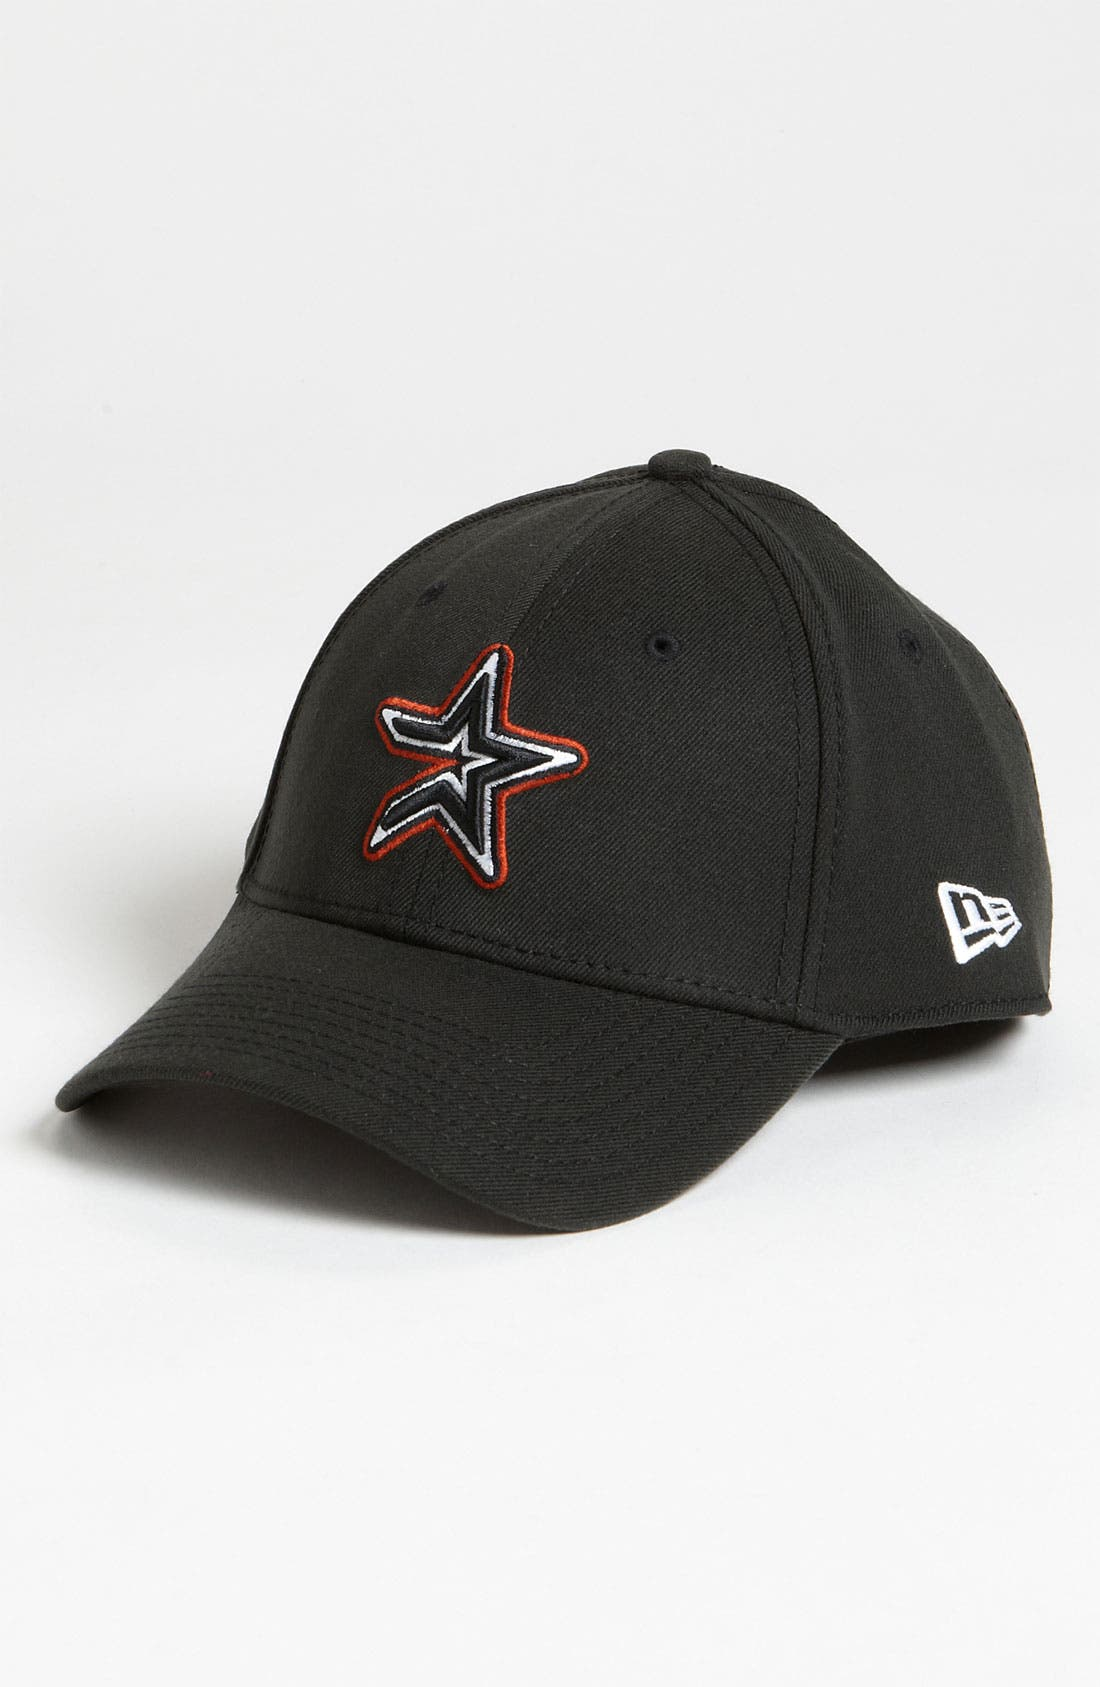 Alternate Image 1 Selected - New Era Cap 'Houston Astros' Baseball Cap